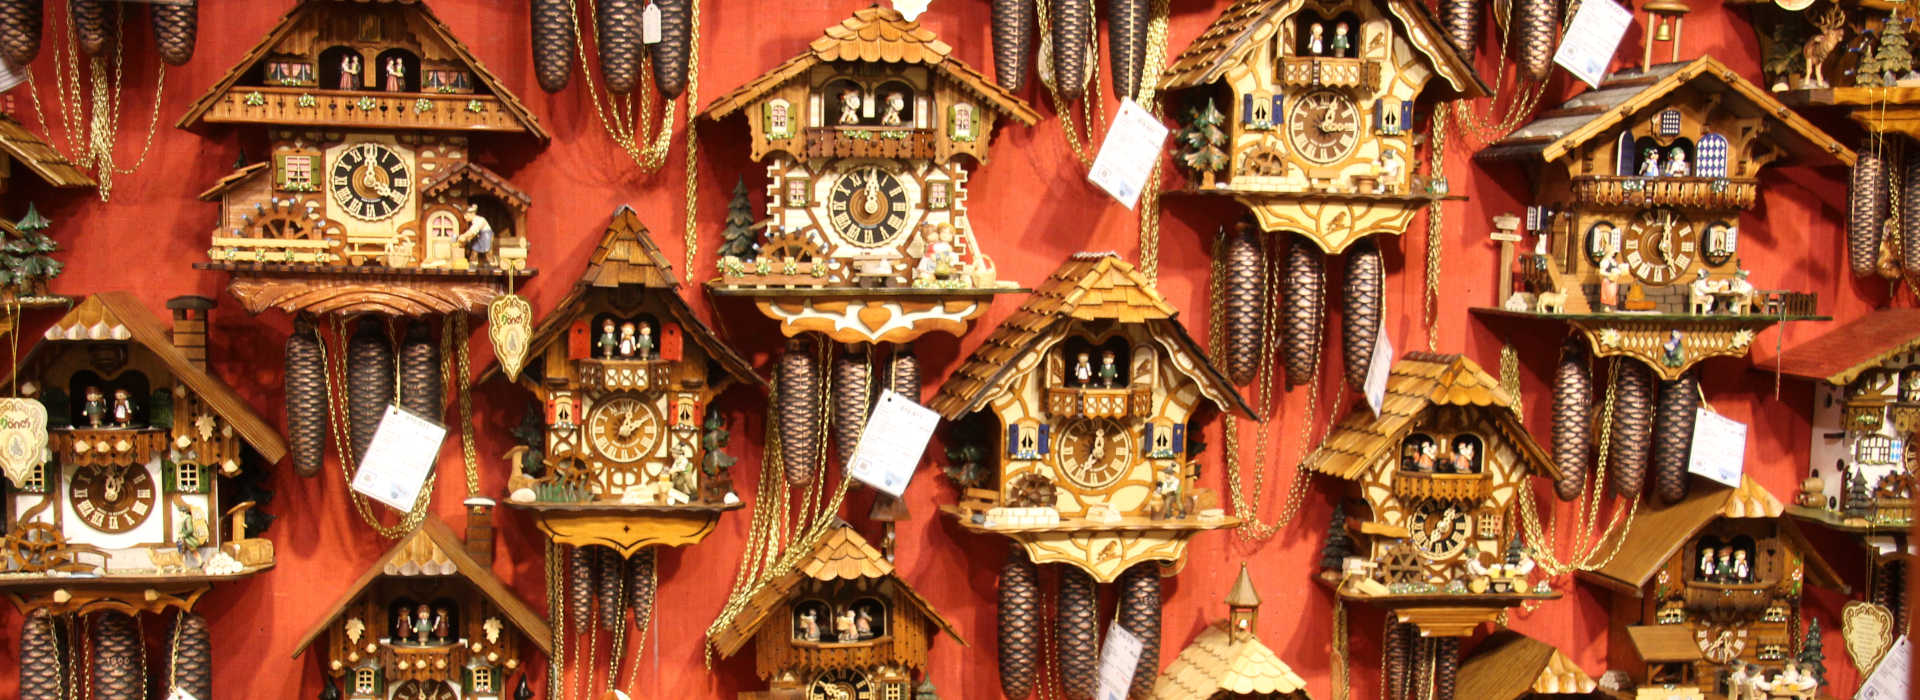 Display of a collection of cuckoo clocks for sale in Bruges, Belgium